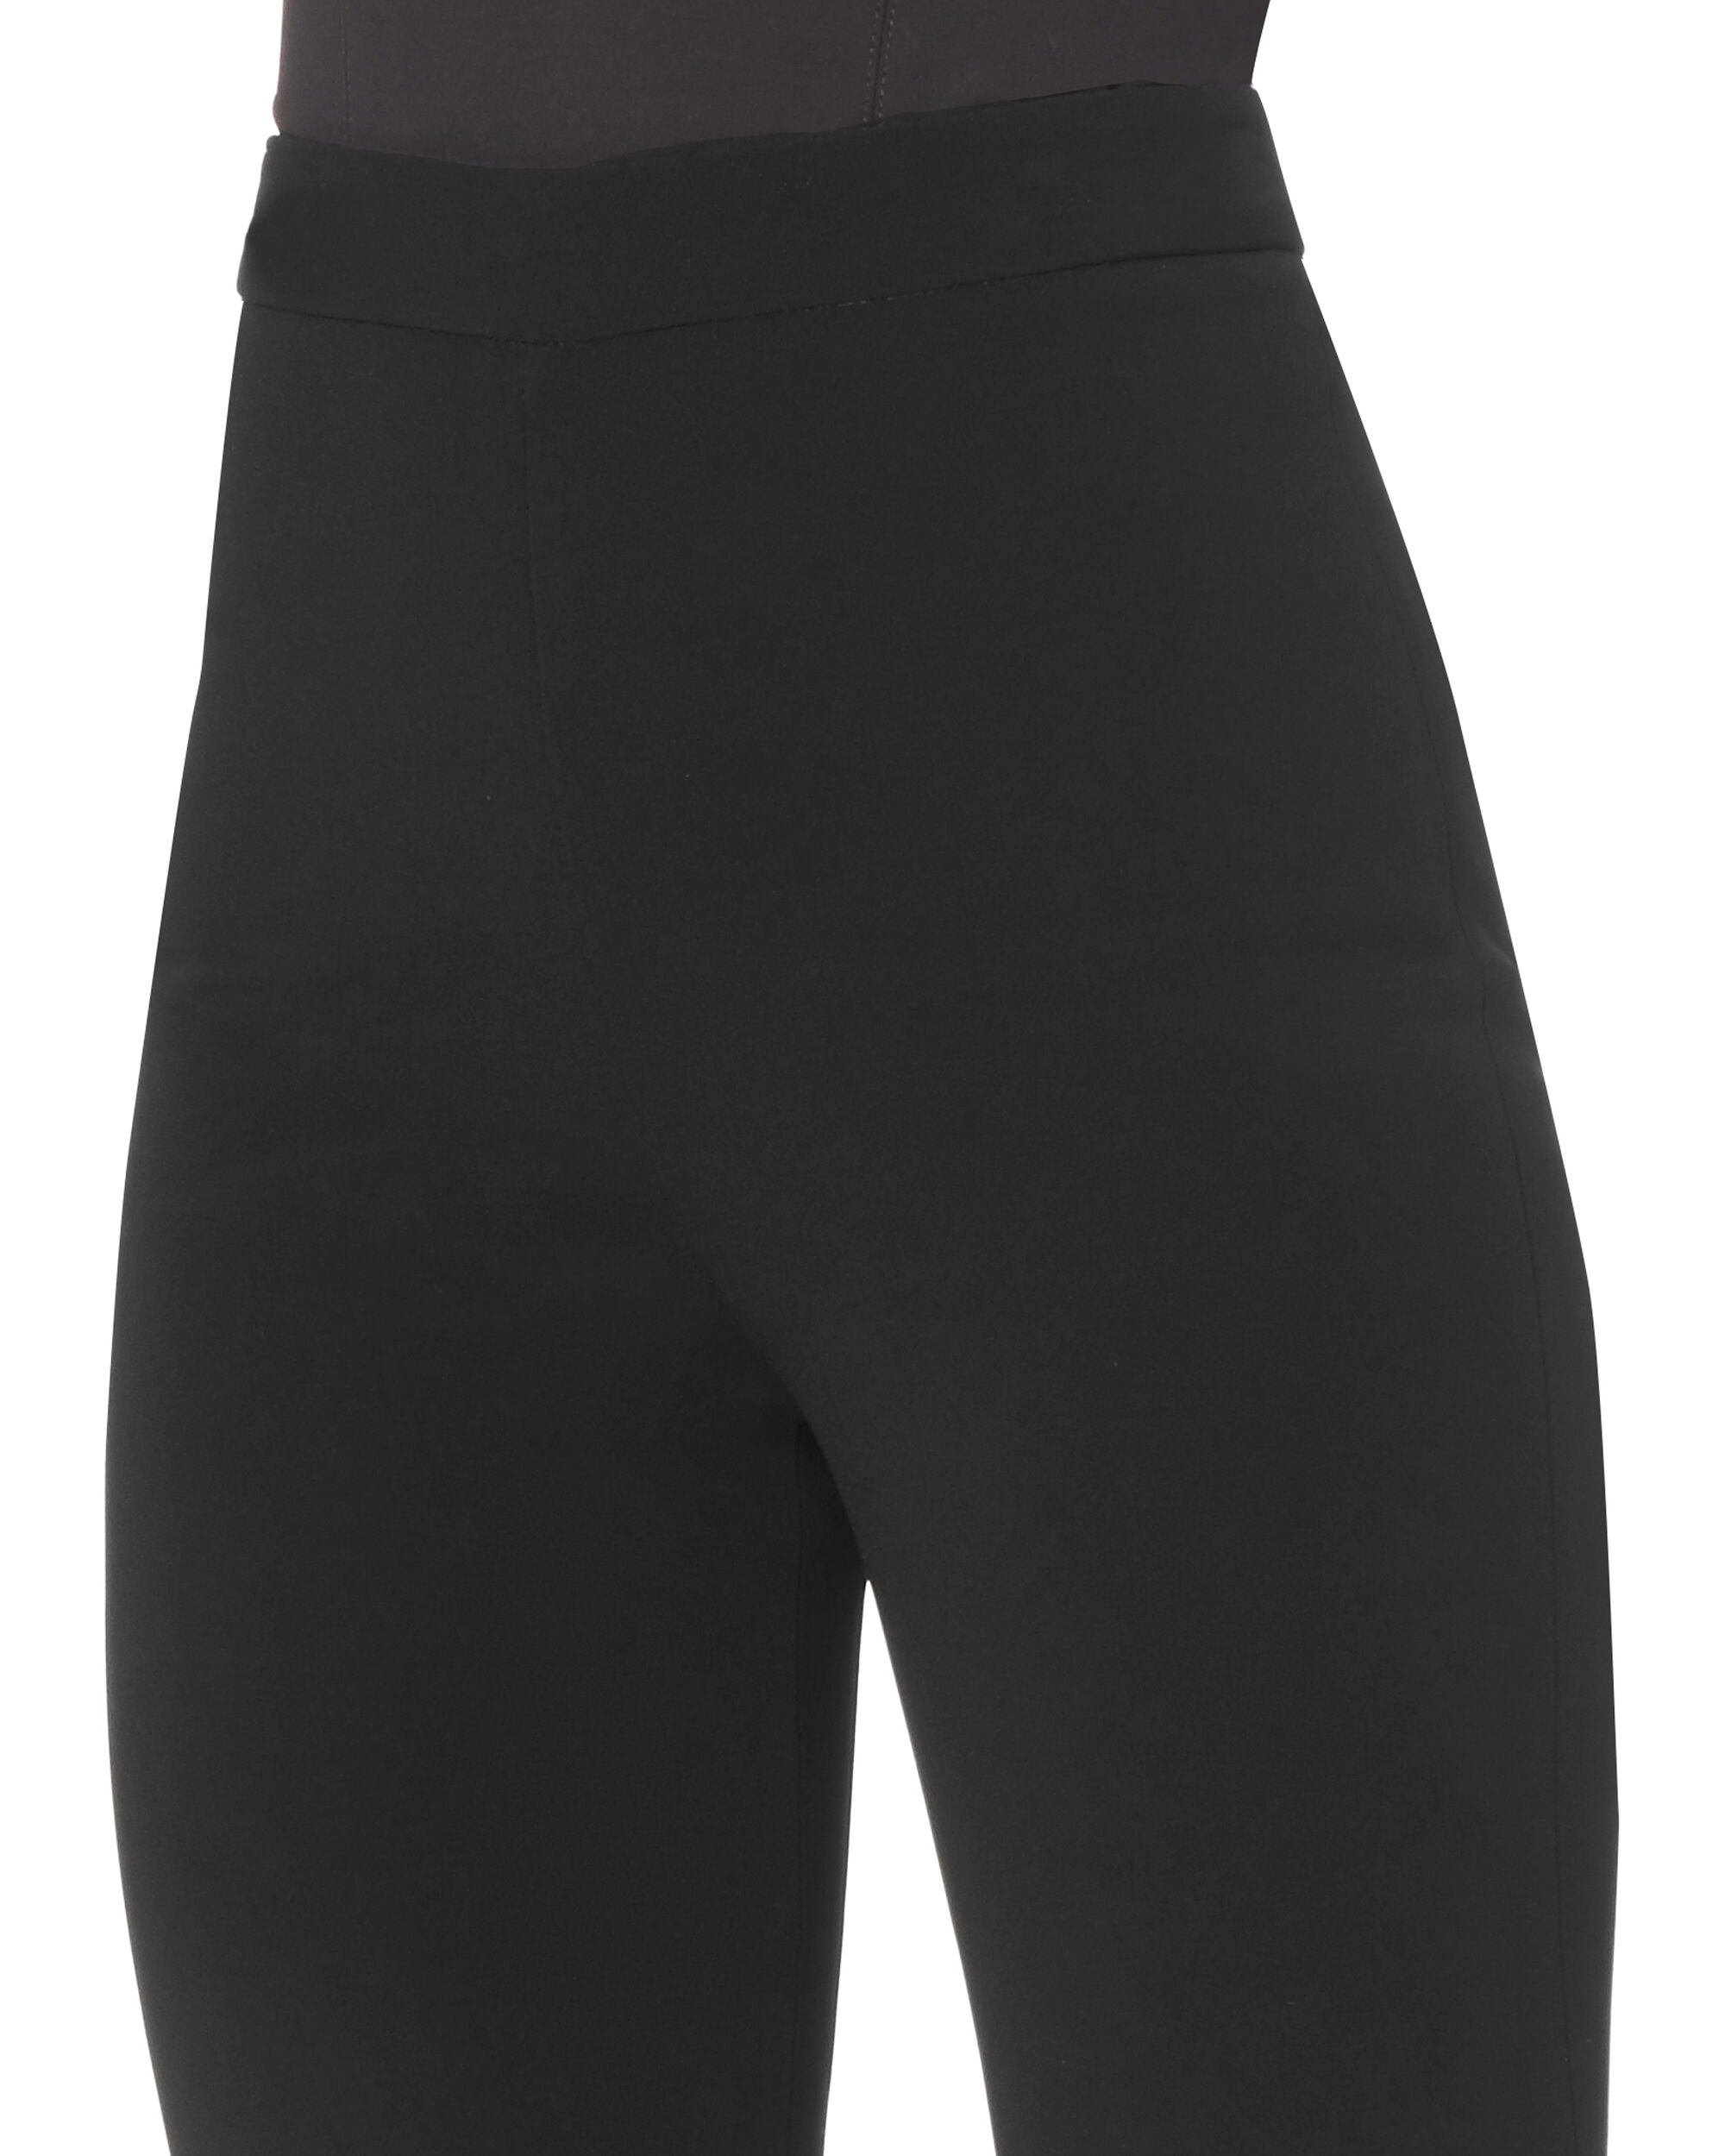 Exaggerated Flare High-Waist Pants, BLACK, hi-res